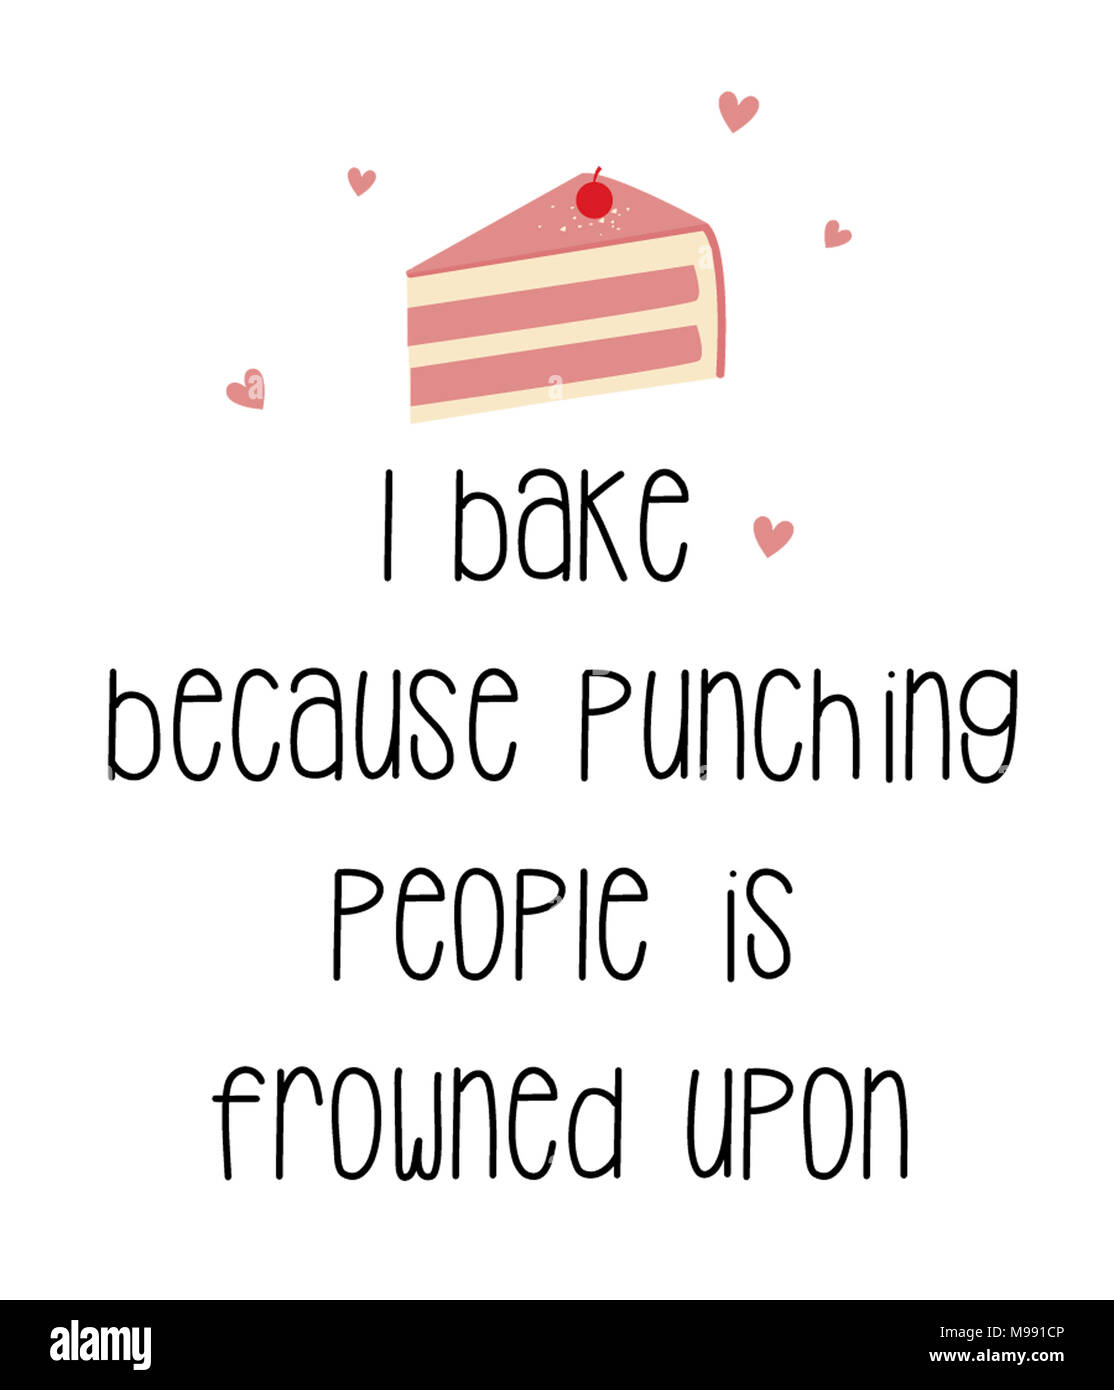 i bake because punching people is frowned upon - Stock Image